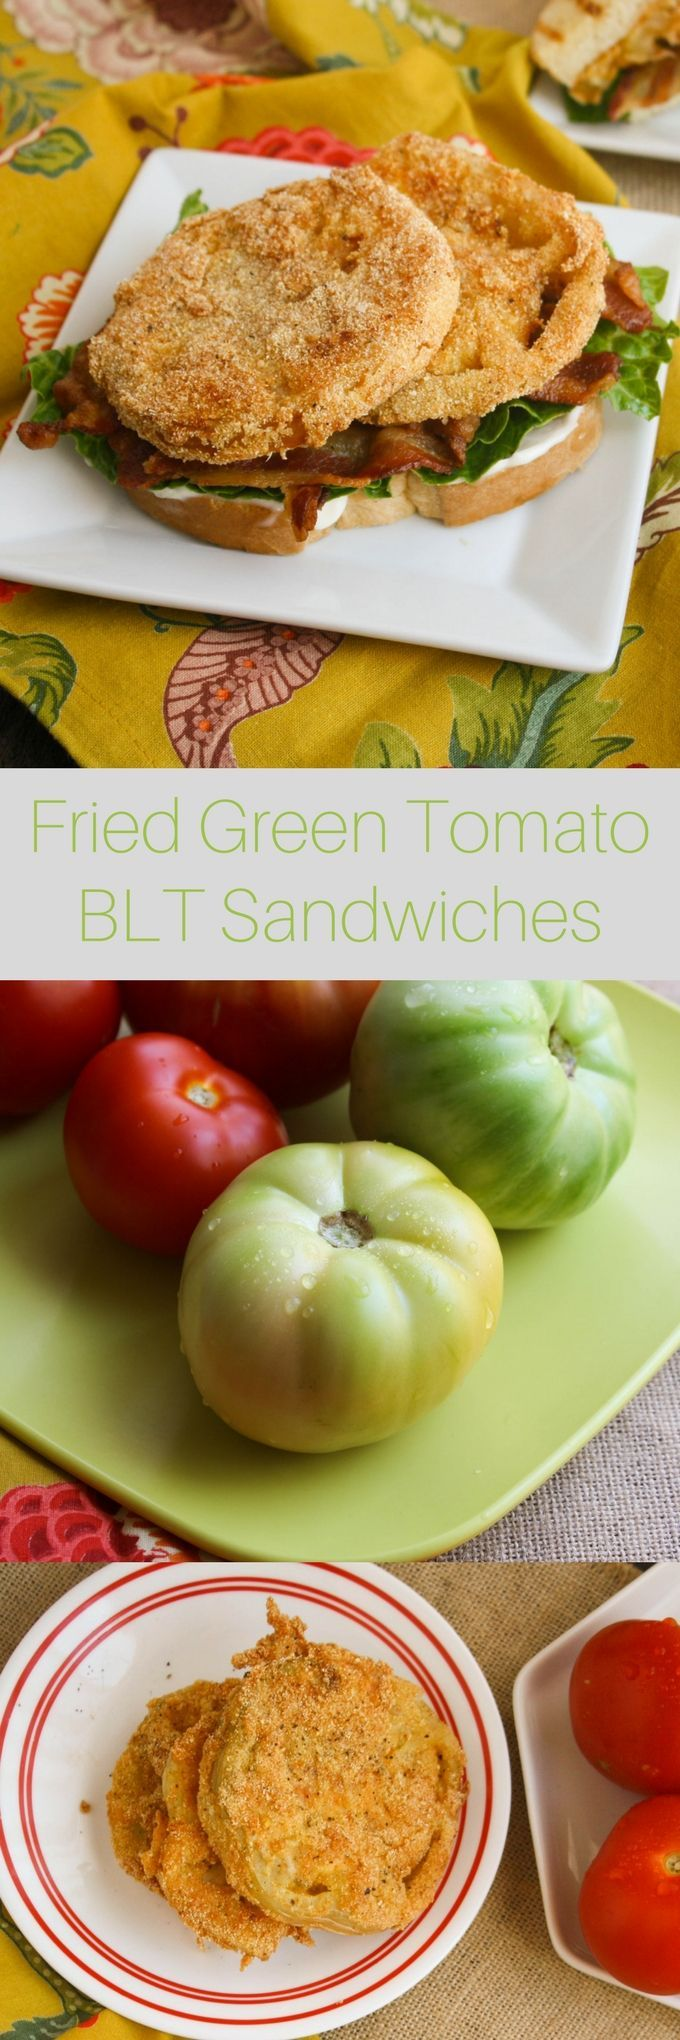 Have you ever had fried green tomatoes? If not, you must! Try them as fried green tomato BLT sandwiches. The tomatoes are thick and hearty and a bit zingy and slightly sour. Curious?